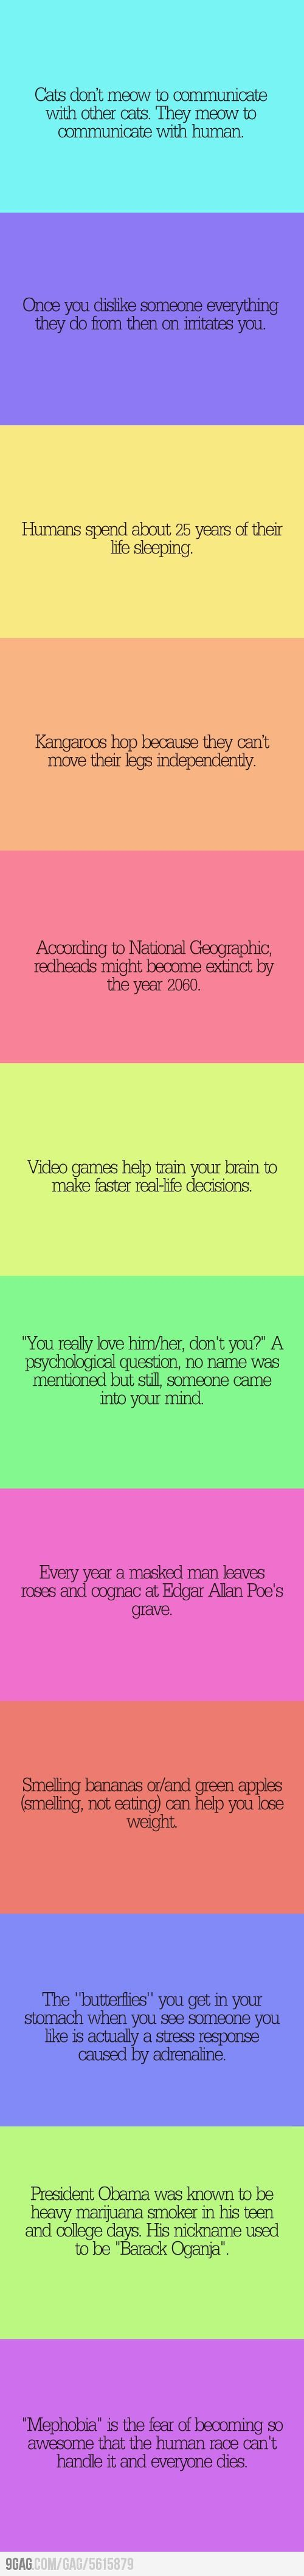 Psycho Facts: